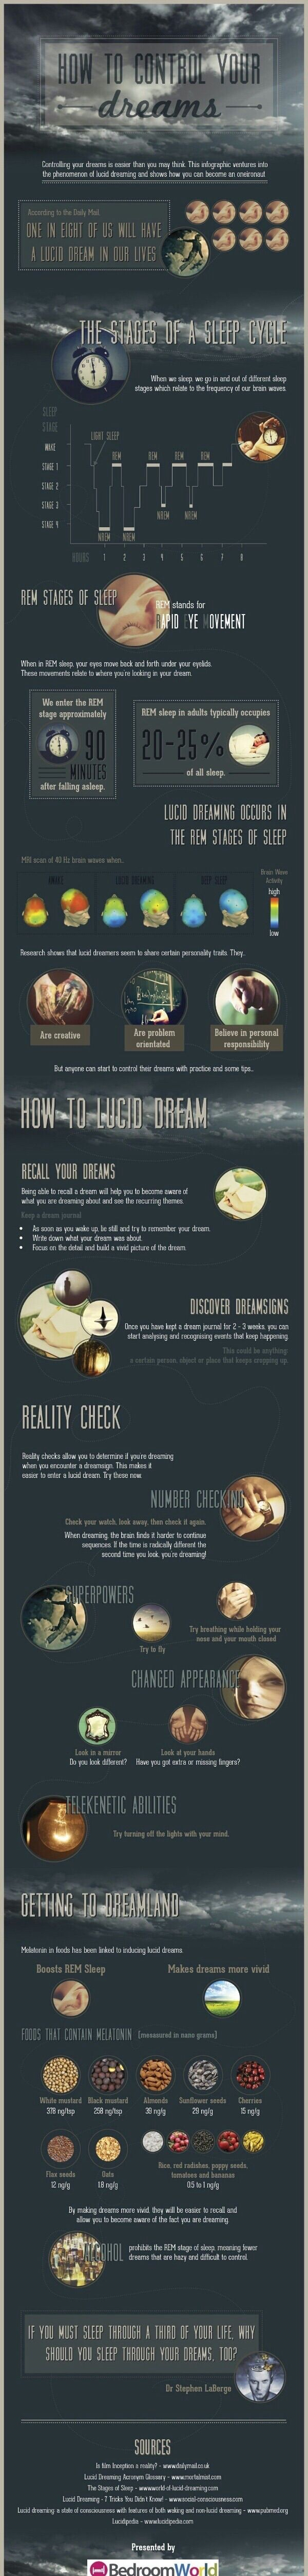 Pin by Shannon on Infographics | Control your dreams, Lucid